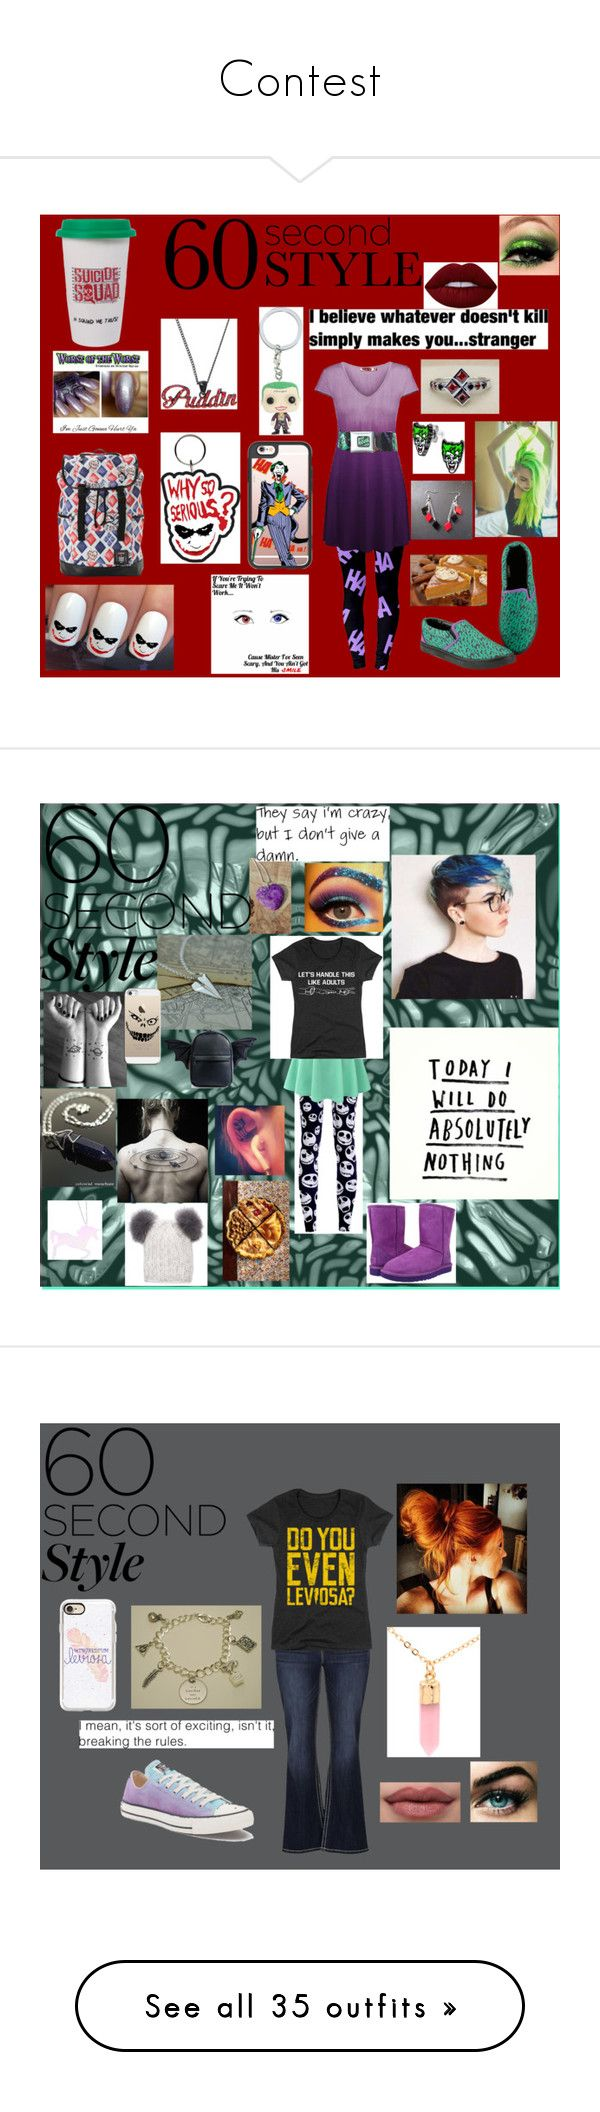 """Contest"" by sydcoleman-star on Polyvore featuring Hot Topic, DC Comics, Casetify, Lime Crime, joker, familydinner, LE3NO, Current Mood, UGG Australia and Curiology"